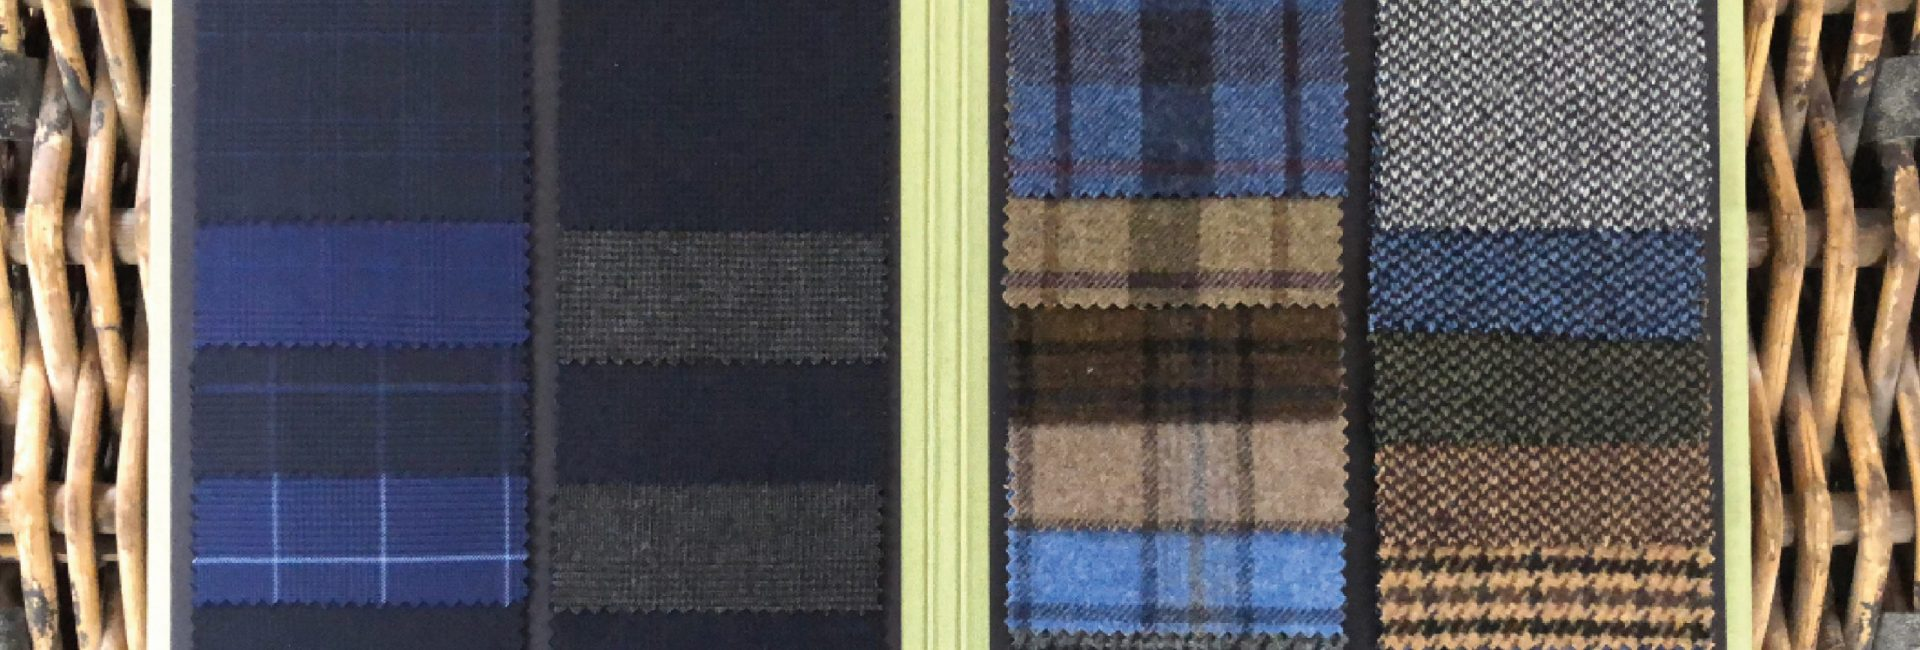 San Lorenzo – combining over 130 years of design with the world's rarest and royal fibre